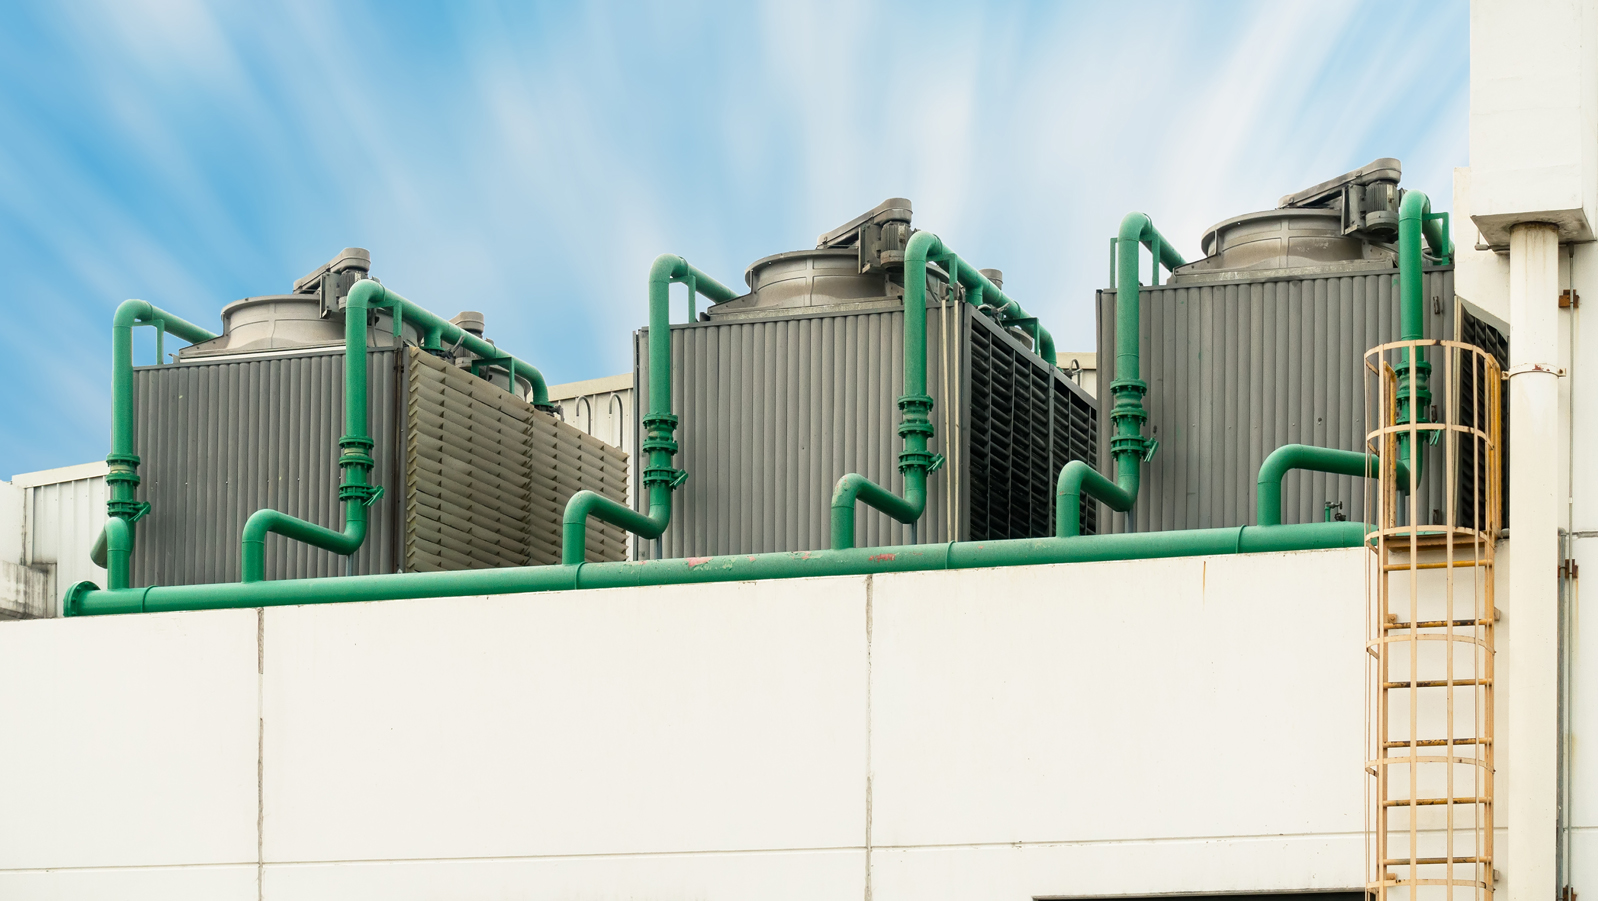 rooftop cooling tower